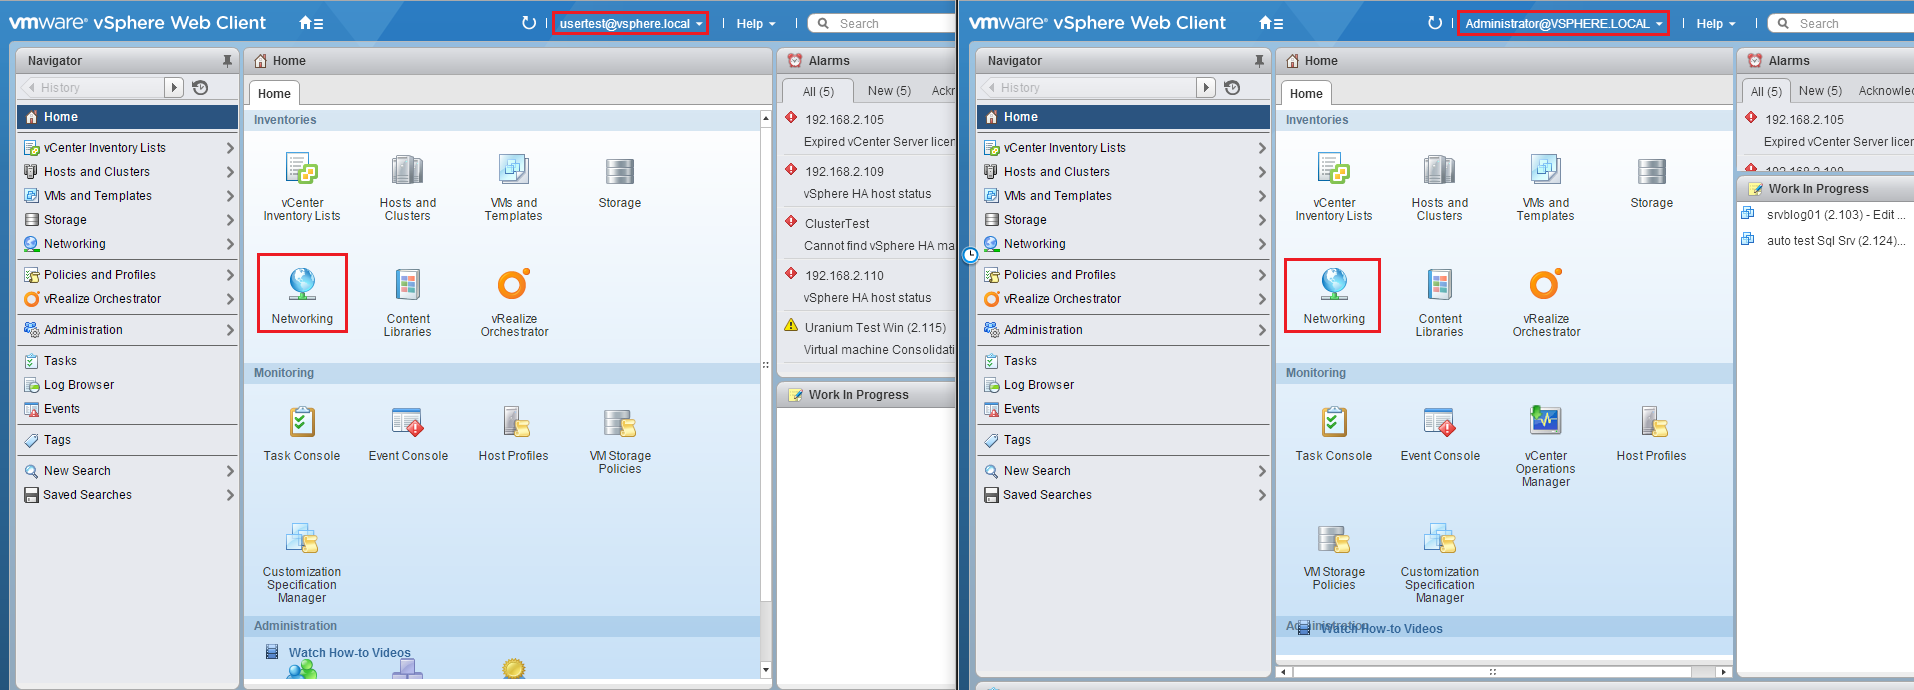 How to add a new user in a customized vCenter Role